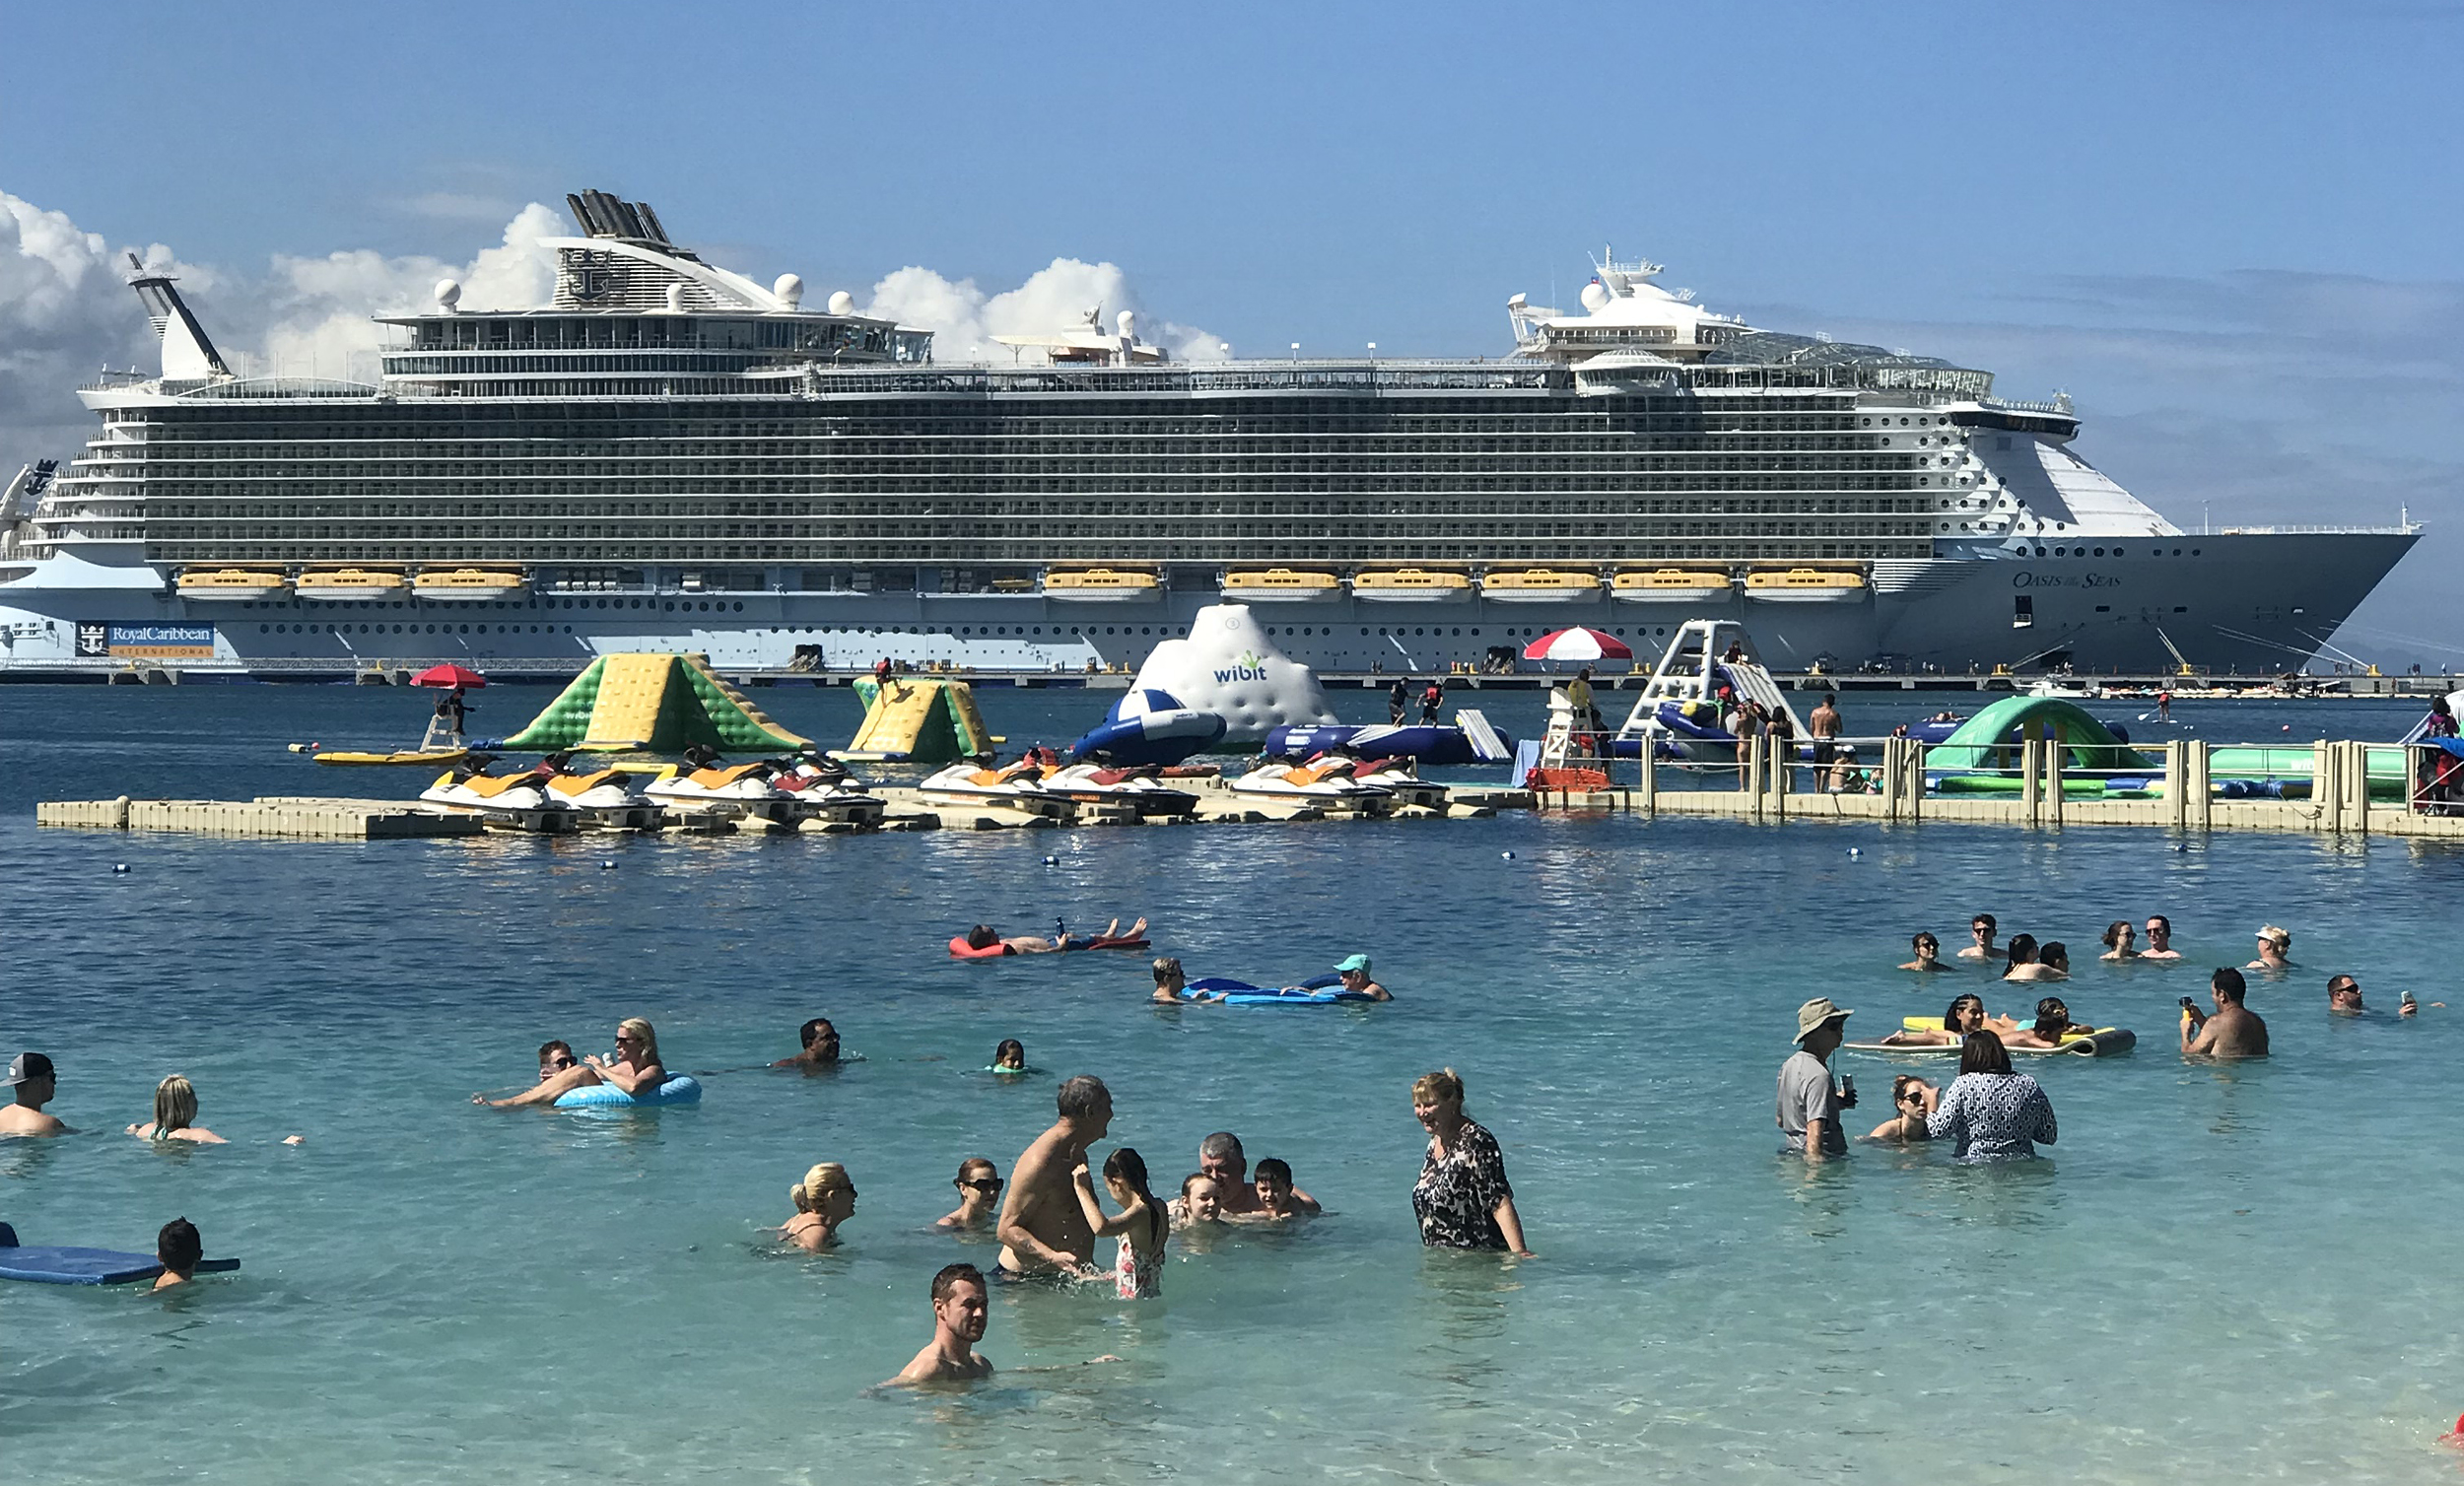 500 Passengers Are Now Sick on Royal Caribbean's Oasis of the Seas Cruise Ship